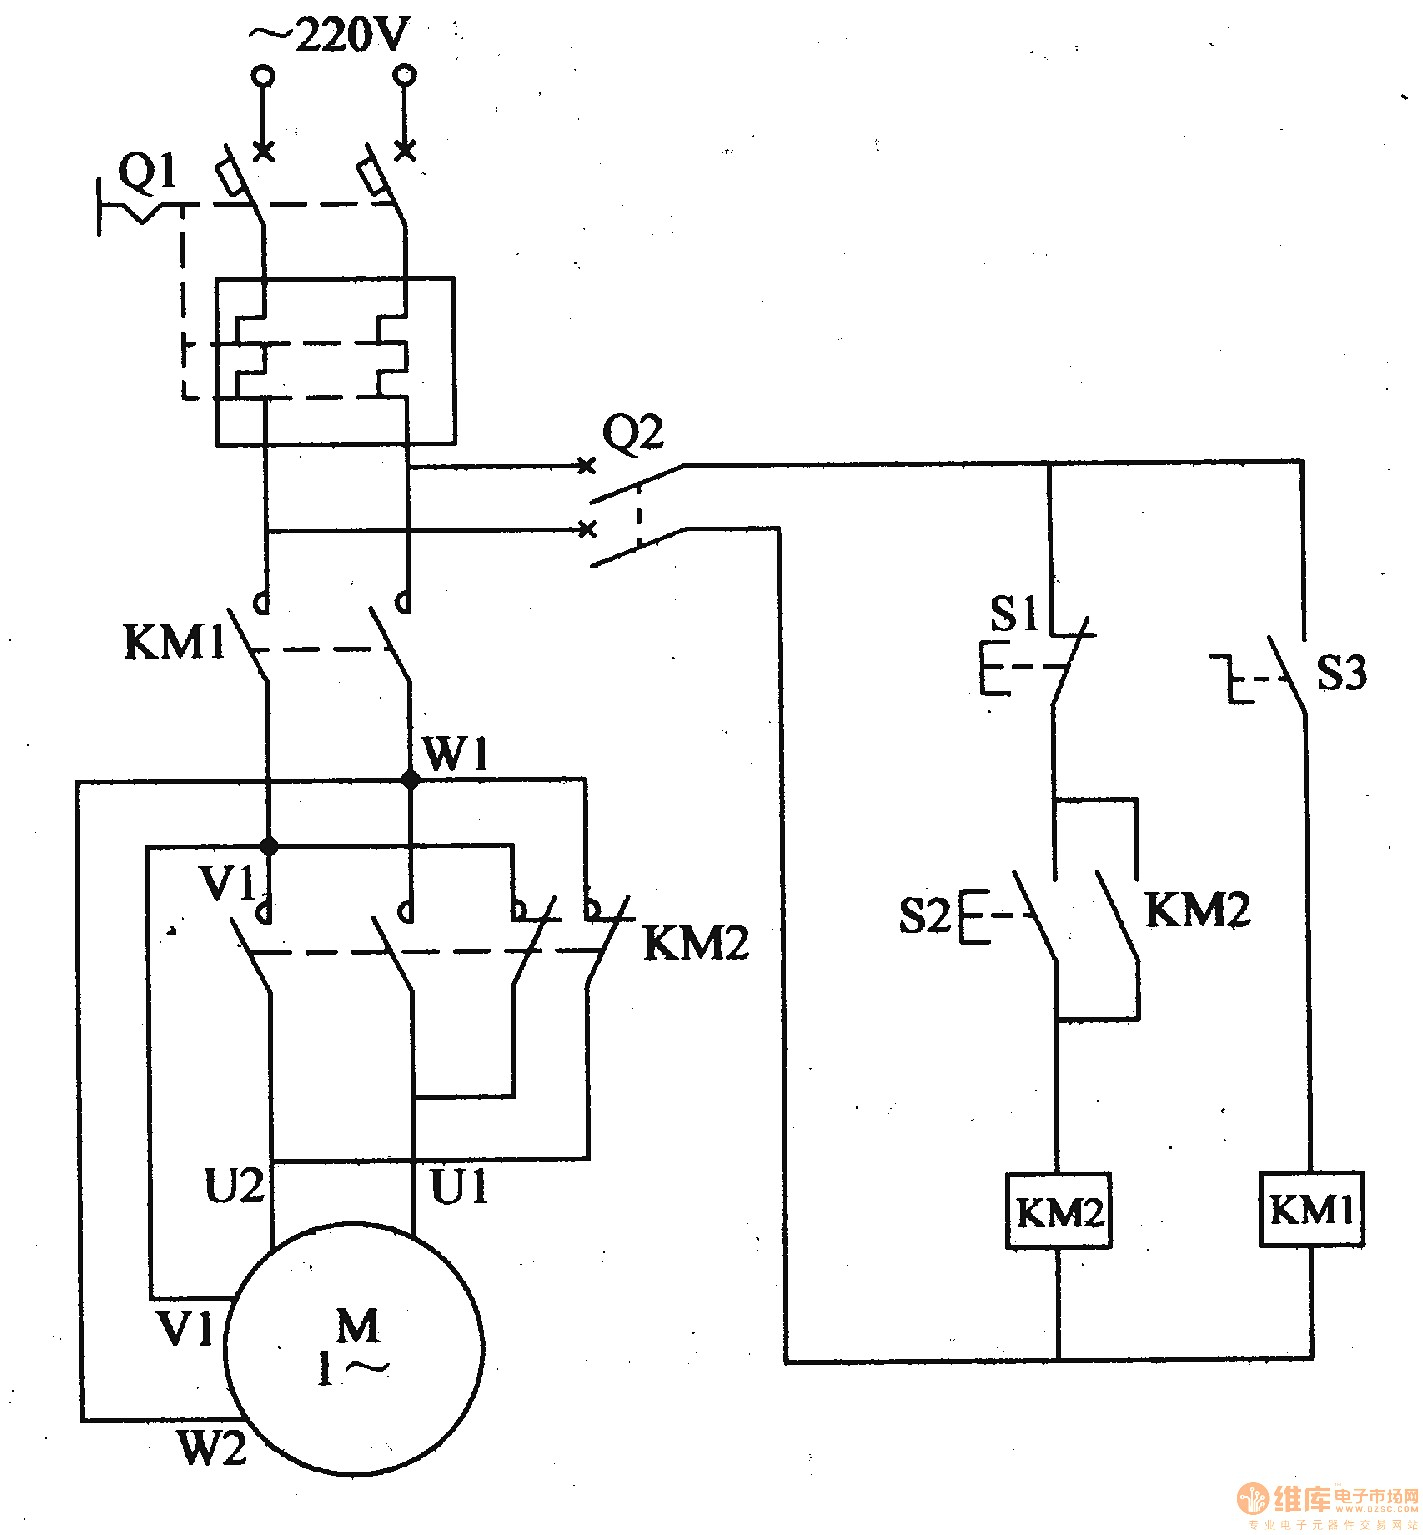 Compressor Wiring Diagram Single Phase from wholefoodsonabudget.com